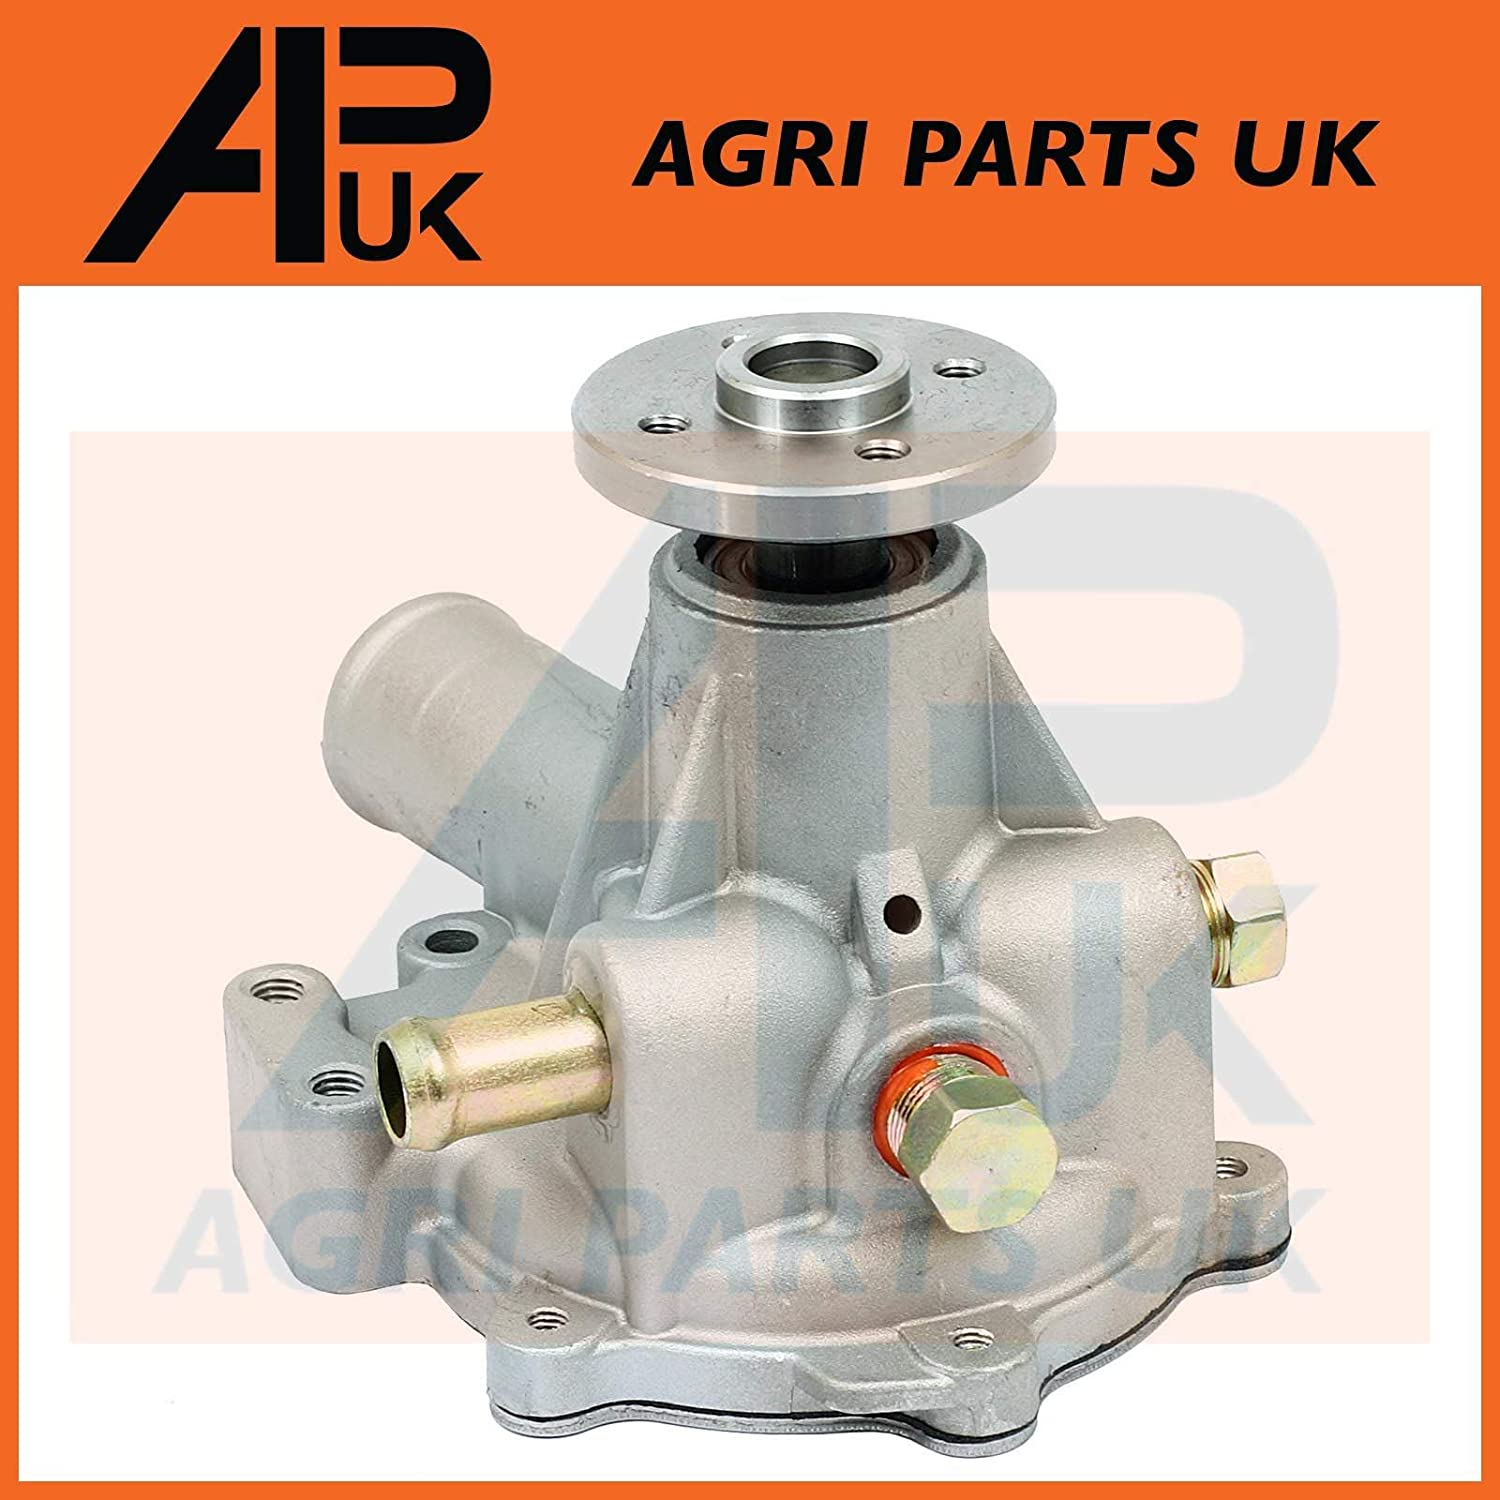 APUK Perkins 145017951 145017950 145016901 145017720 45017952 U45017942 Water pump Agri Parts UK Ltd